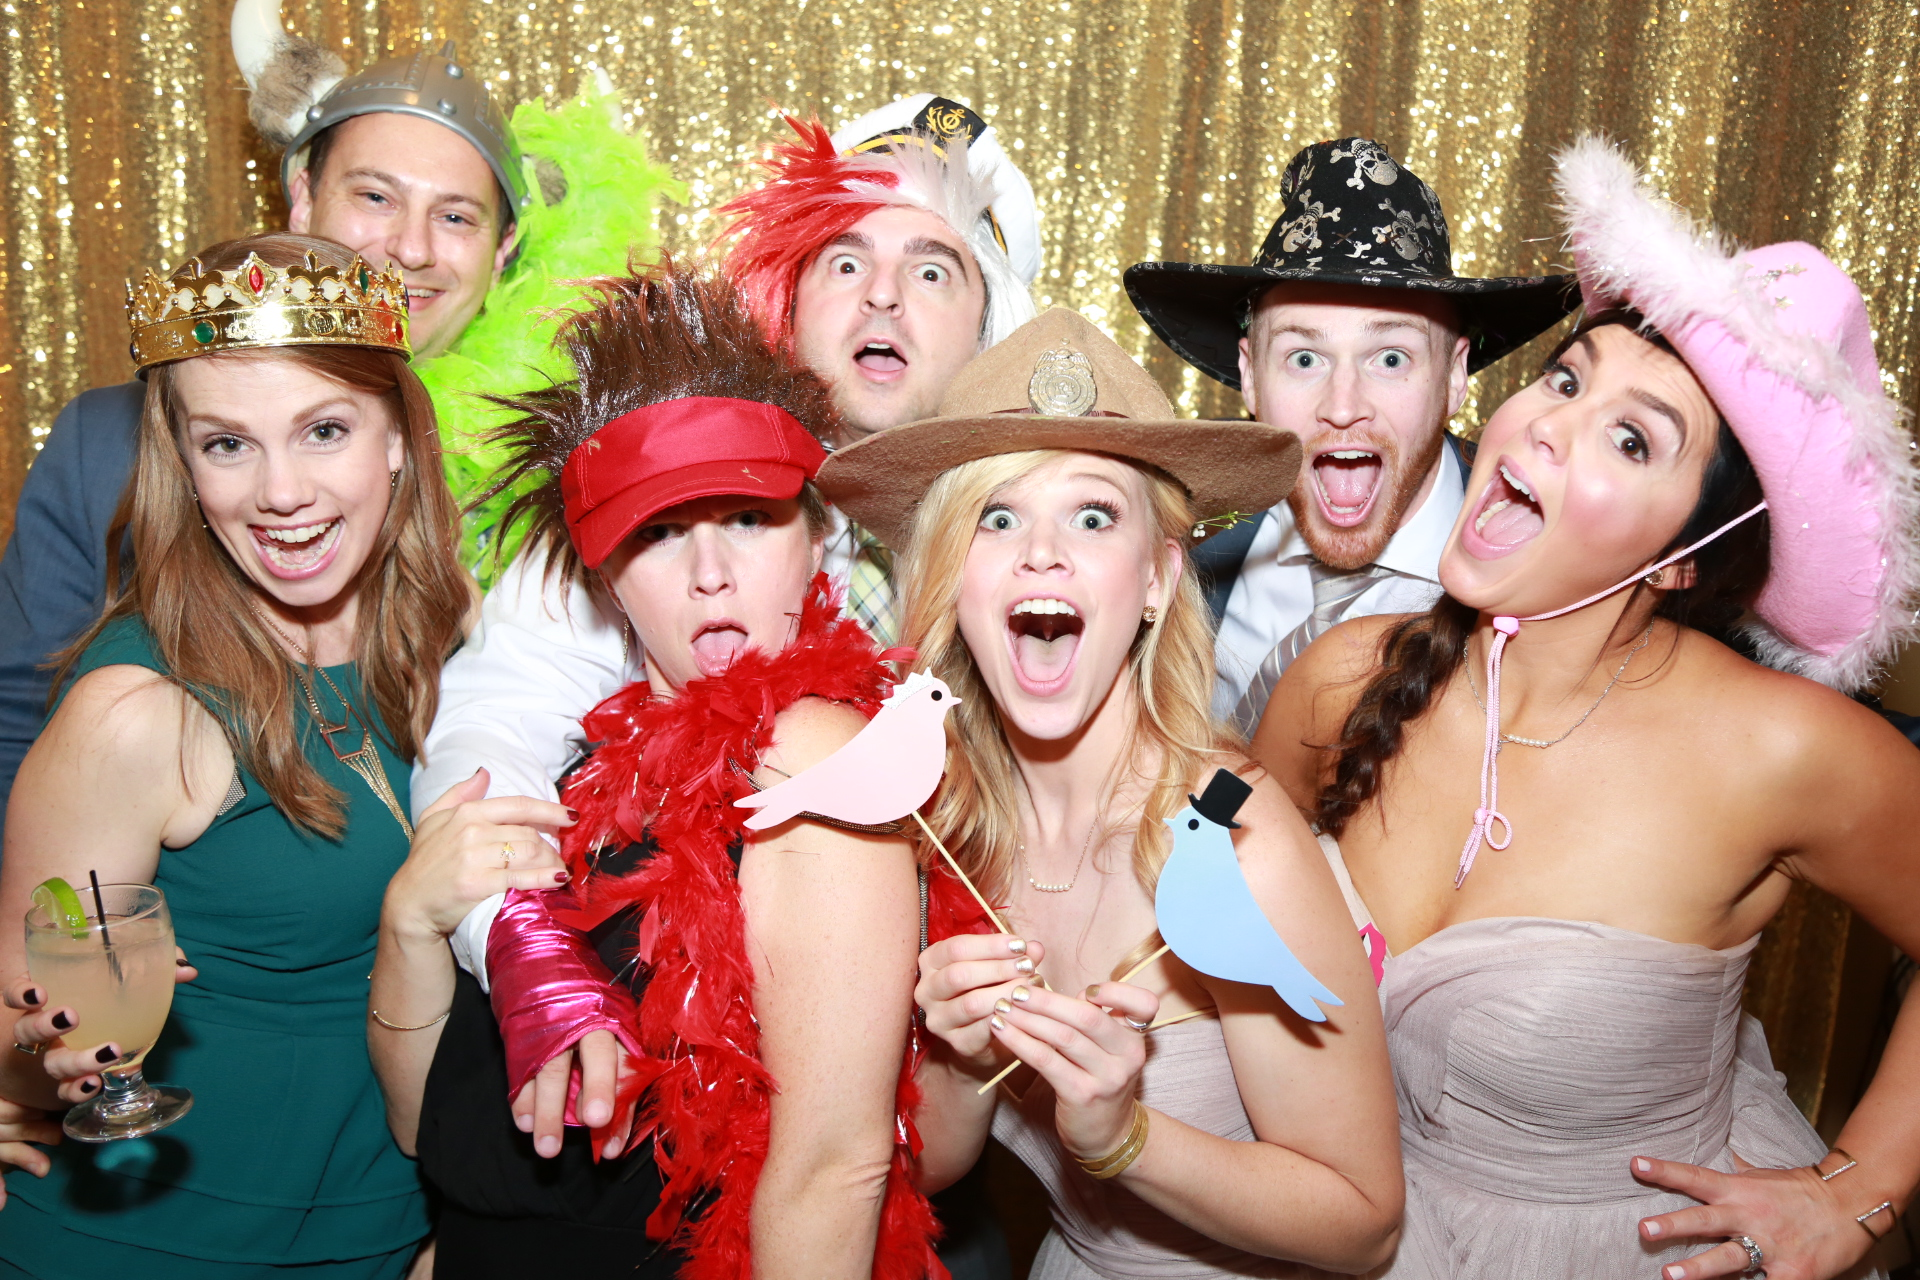 $399 Photo Booth - Text & Email yourself directly from the booth. Printing is a given. Colorful backdrops to choose from! Lots of Props! Up to 5 hours, Online Gallery for downloading, Open booth for large groups, 4x6 printing included